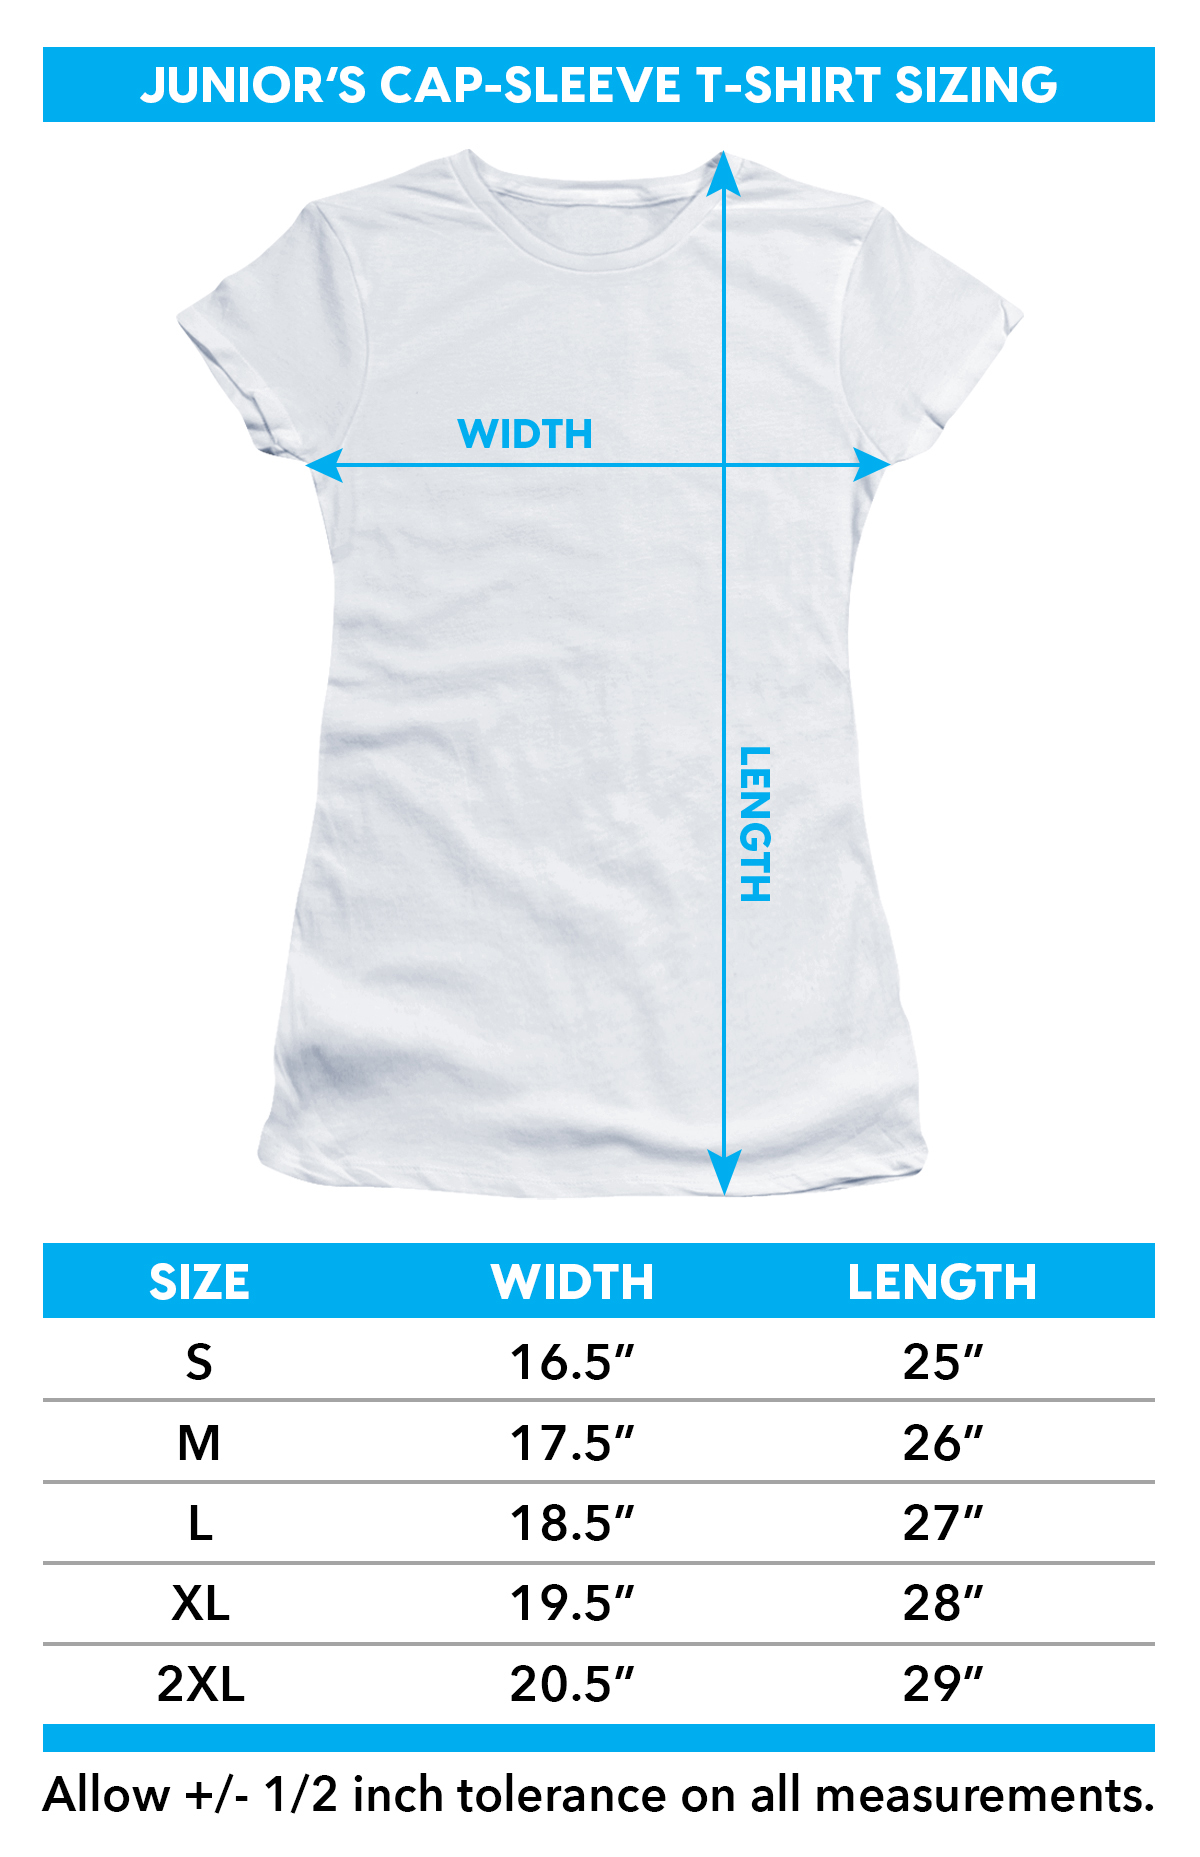 Girls sizing chart for The Hobbit Girls T-Shirt - Smaug on Fire TRV-HOB3023-JS